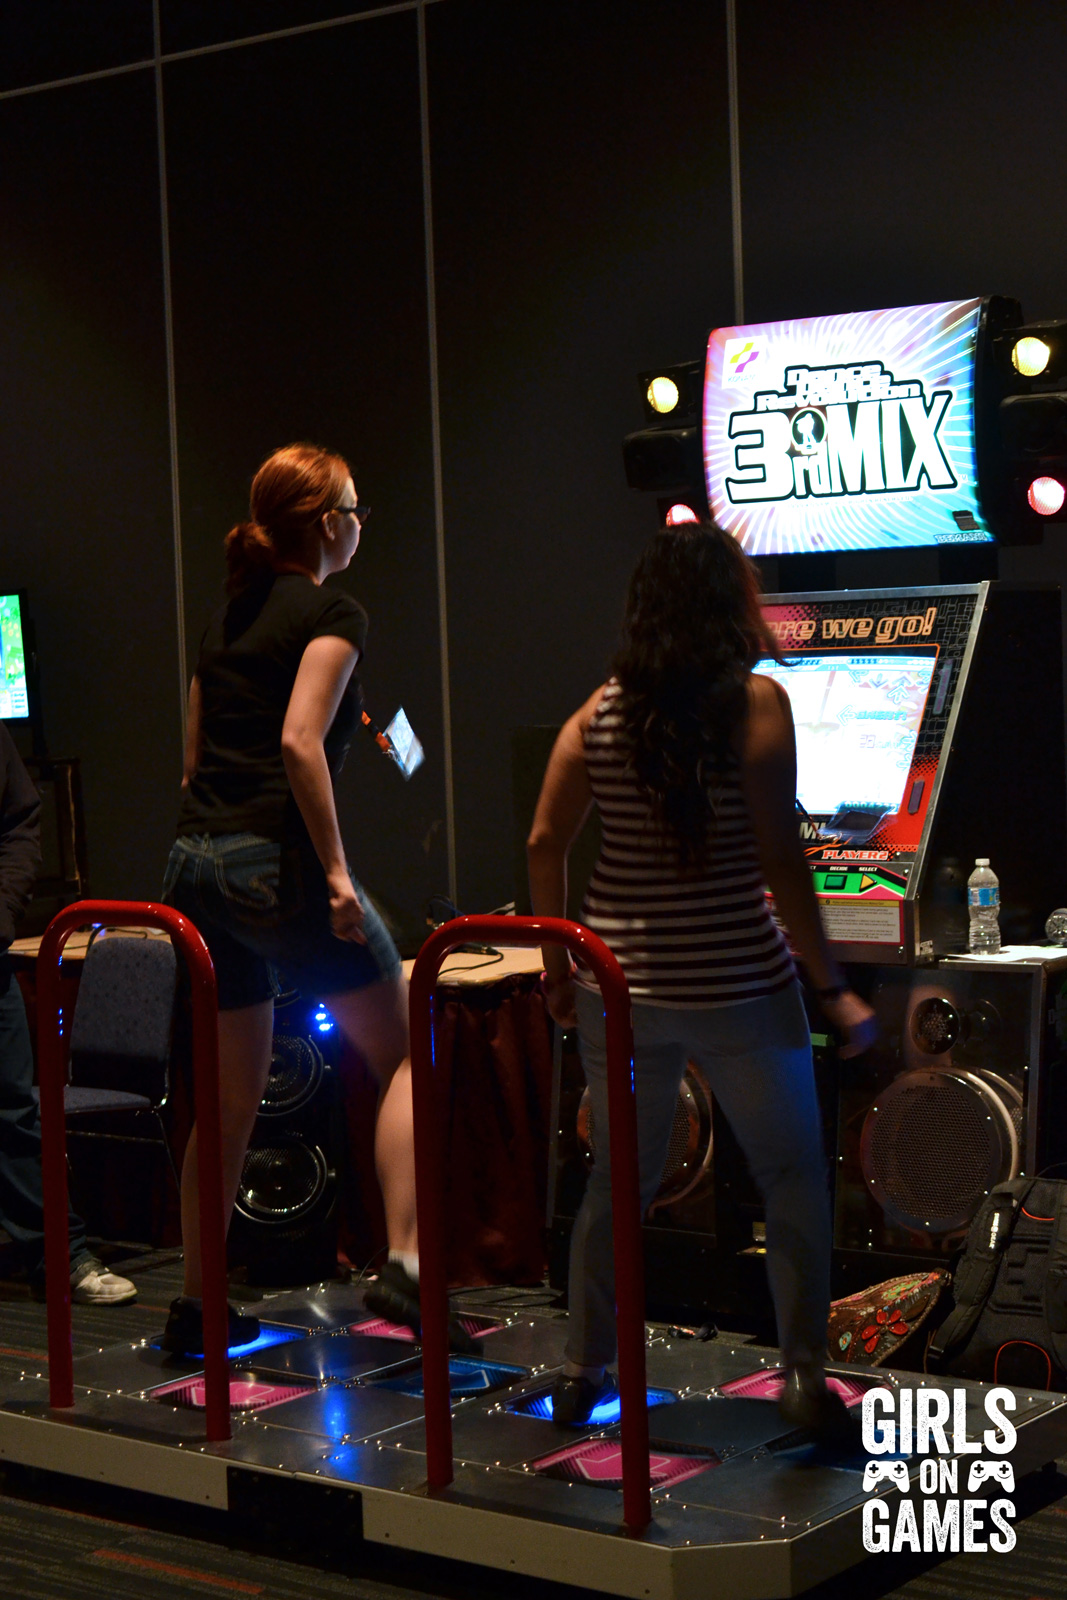 Otakuthon 2015 attendees play Dance Dance Revolution in the video game room.